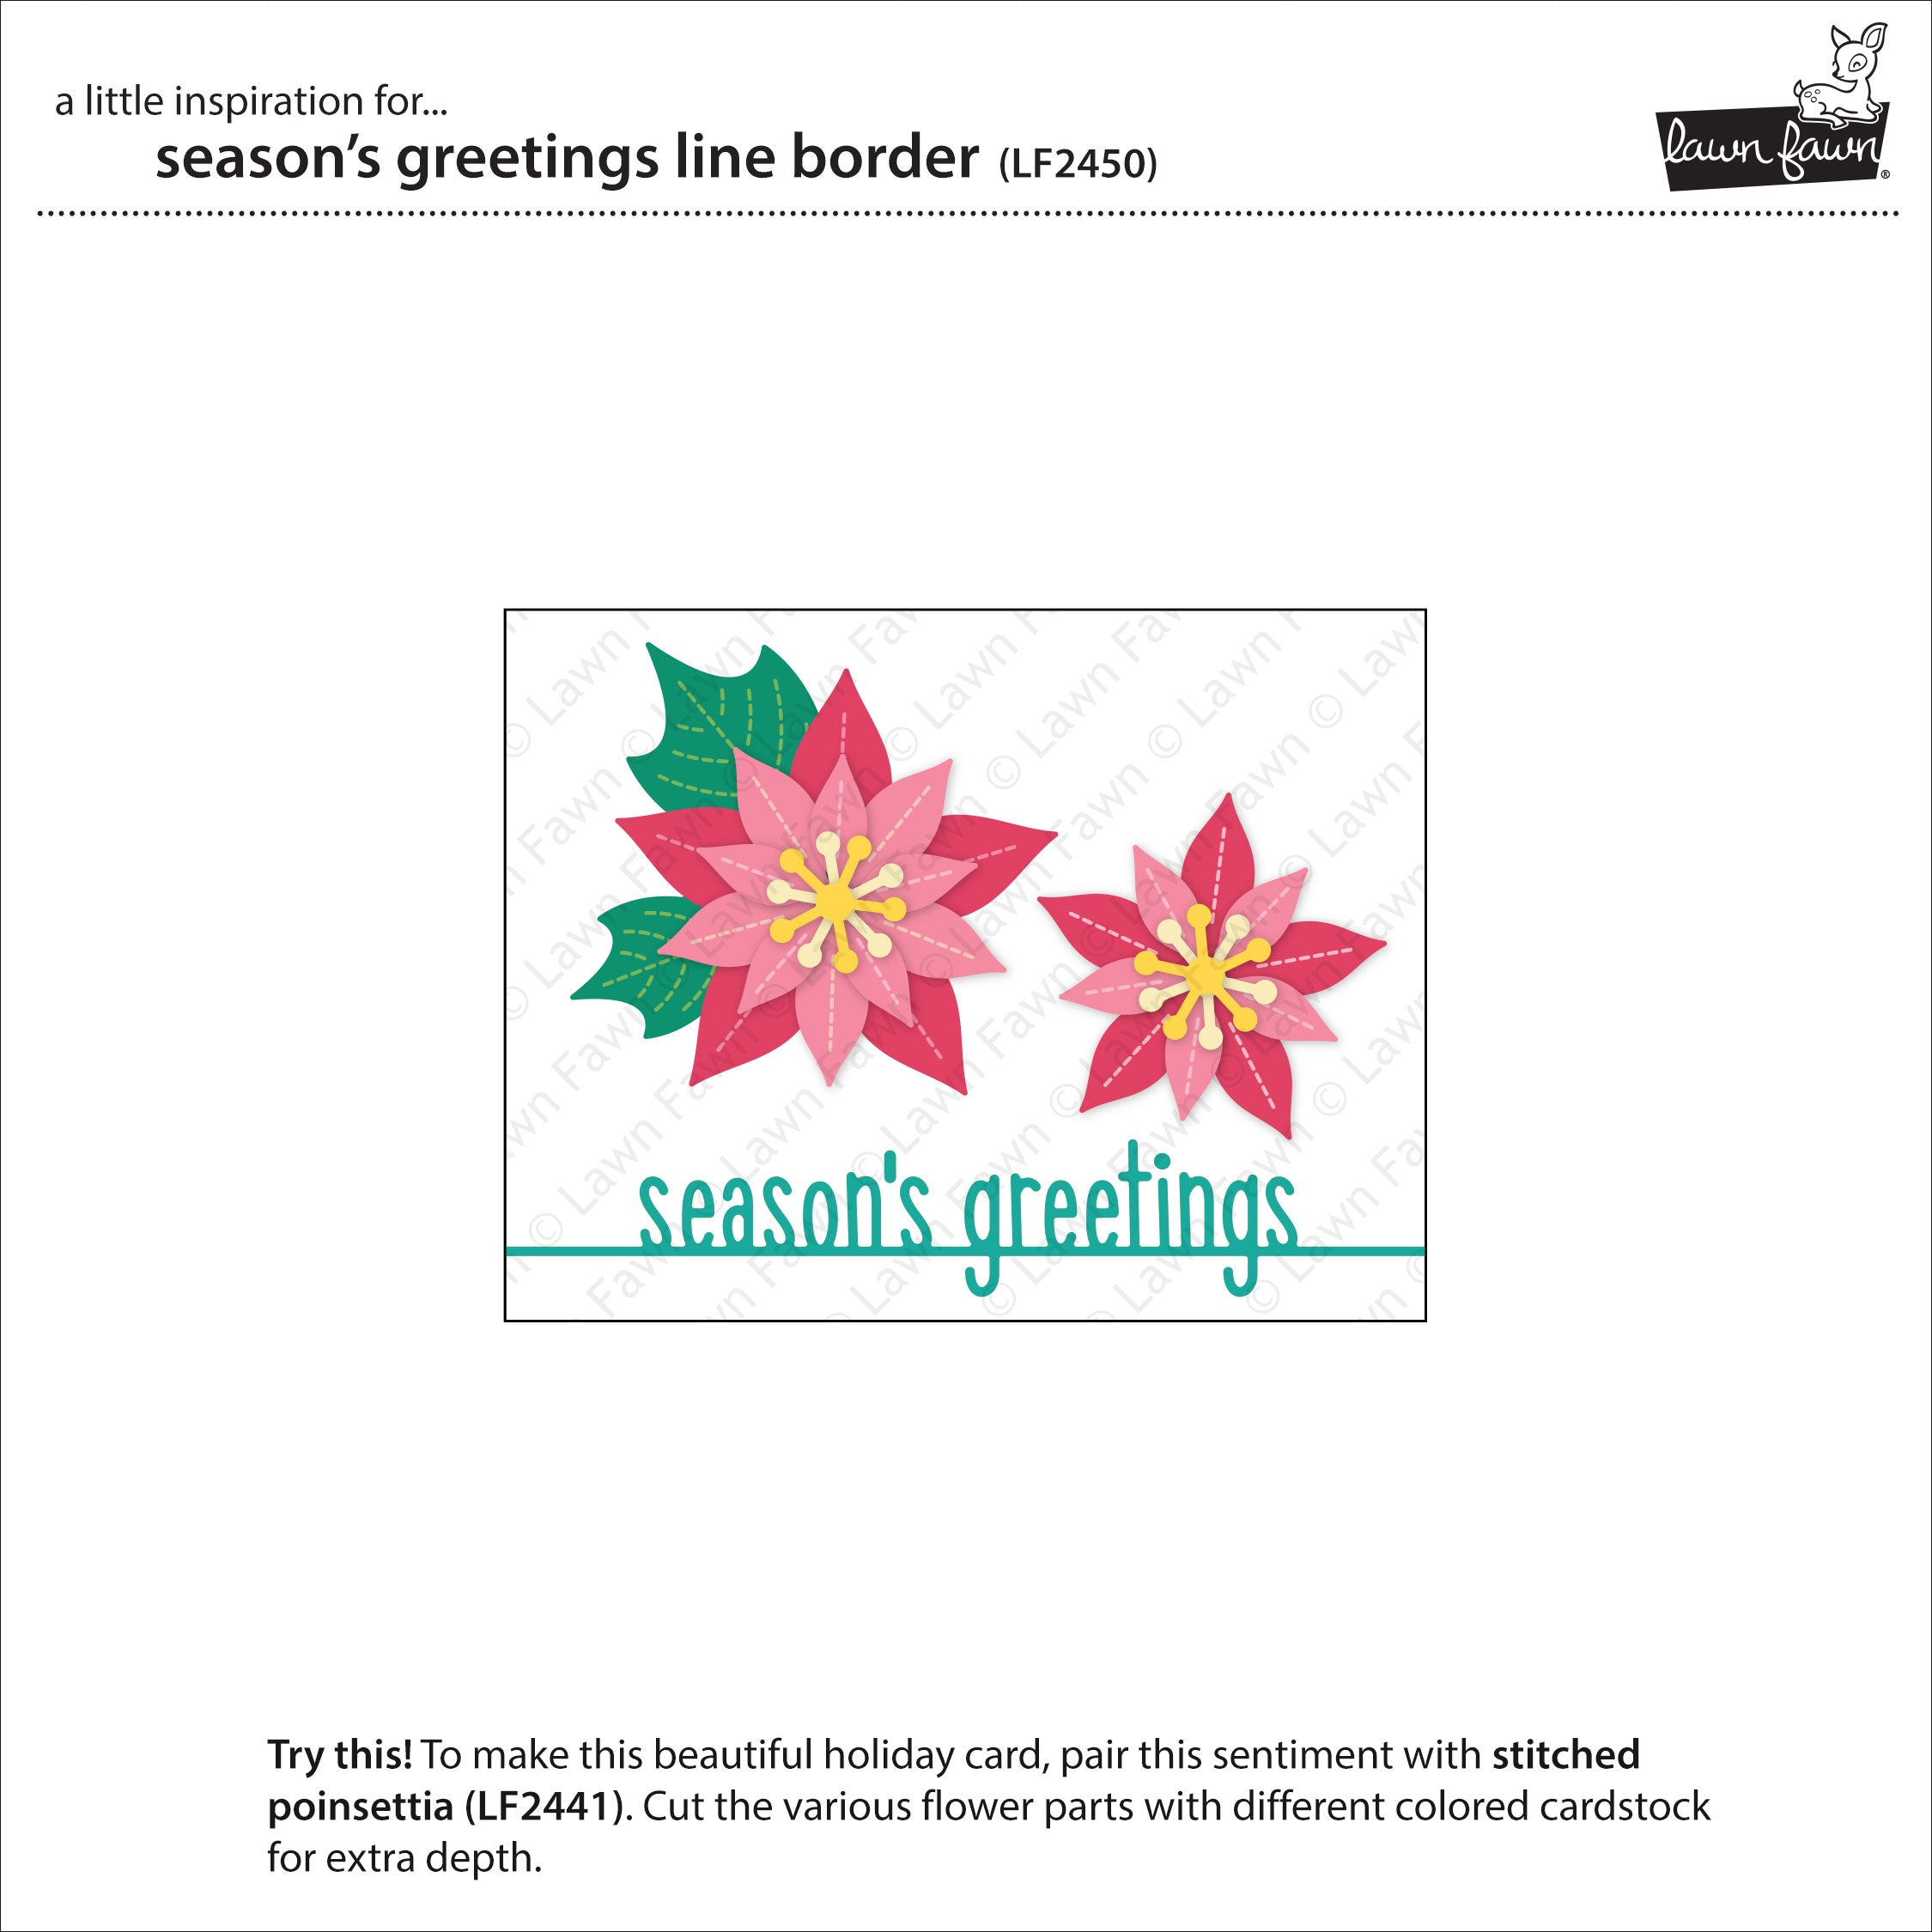 season's greetings line border